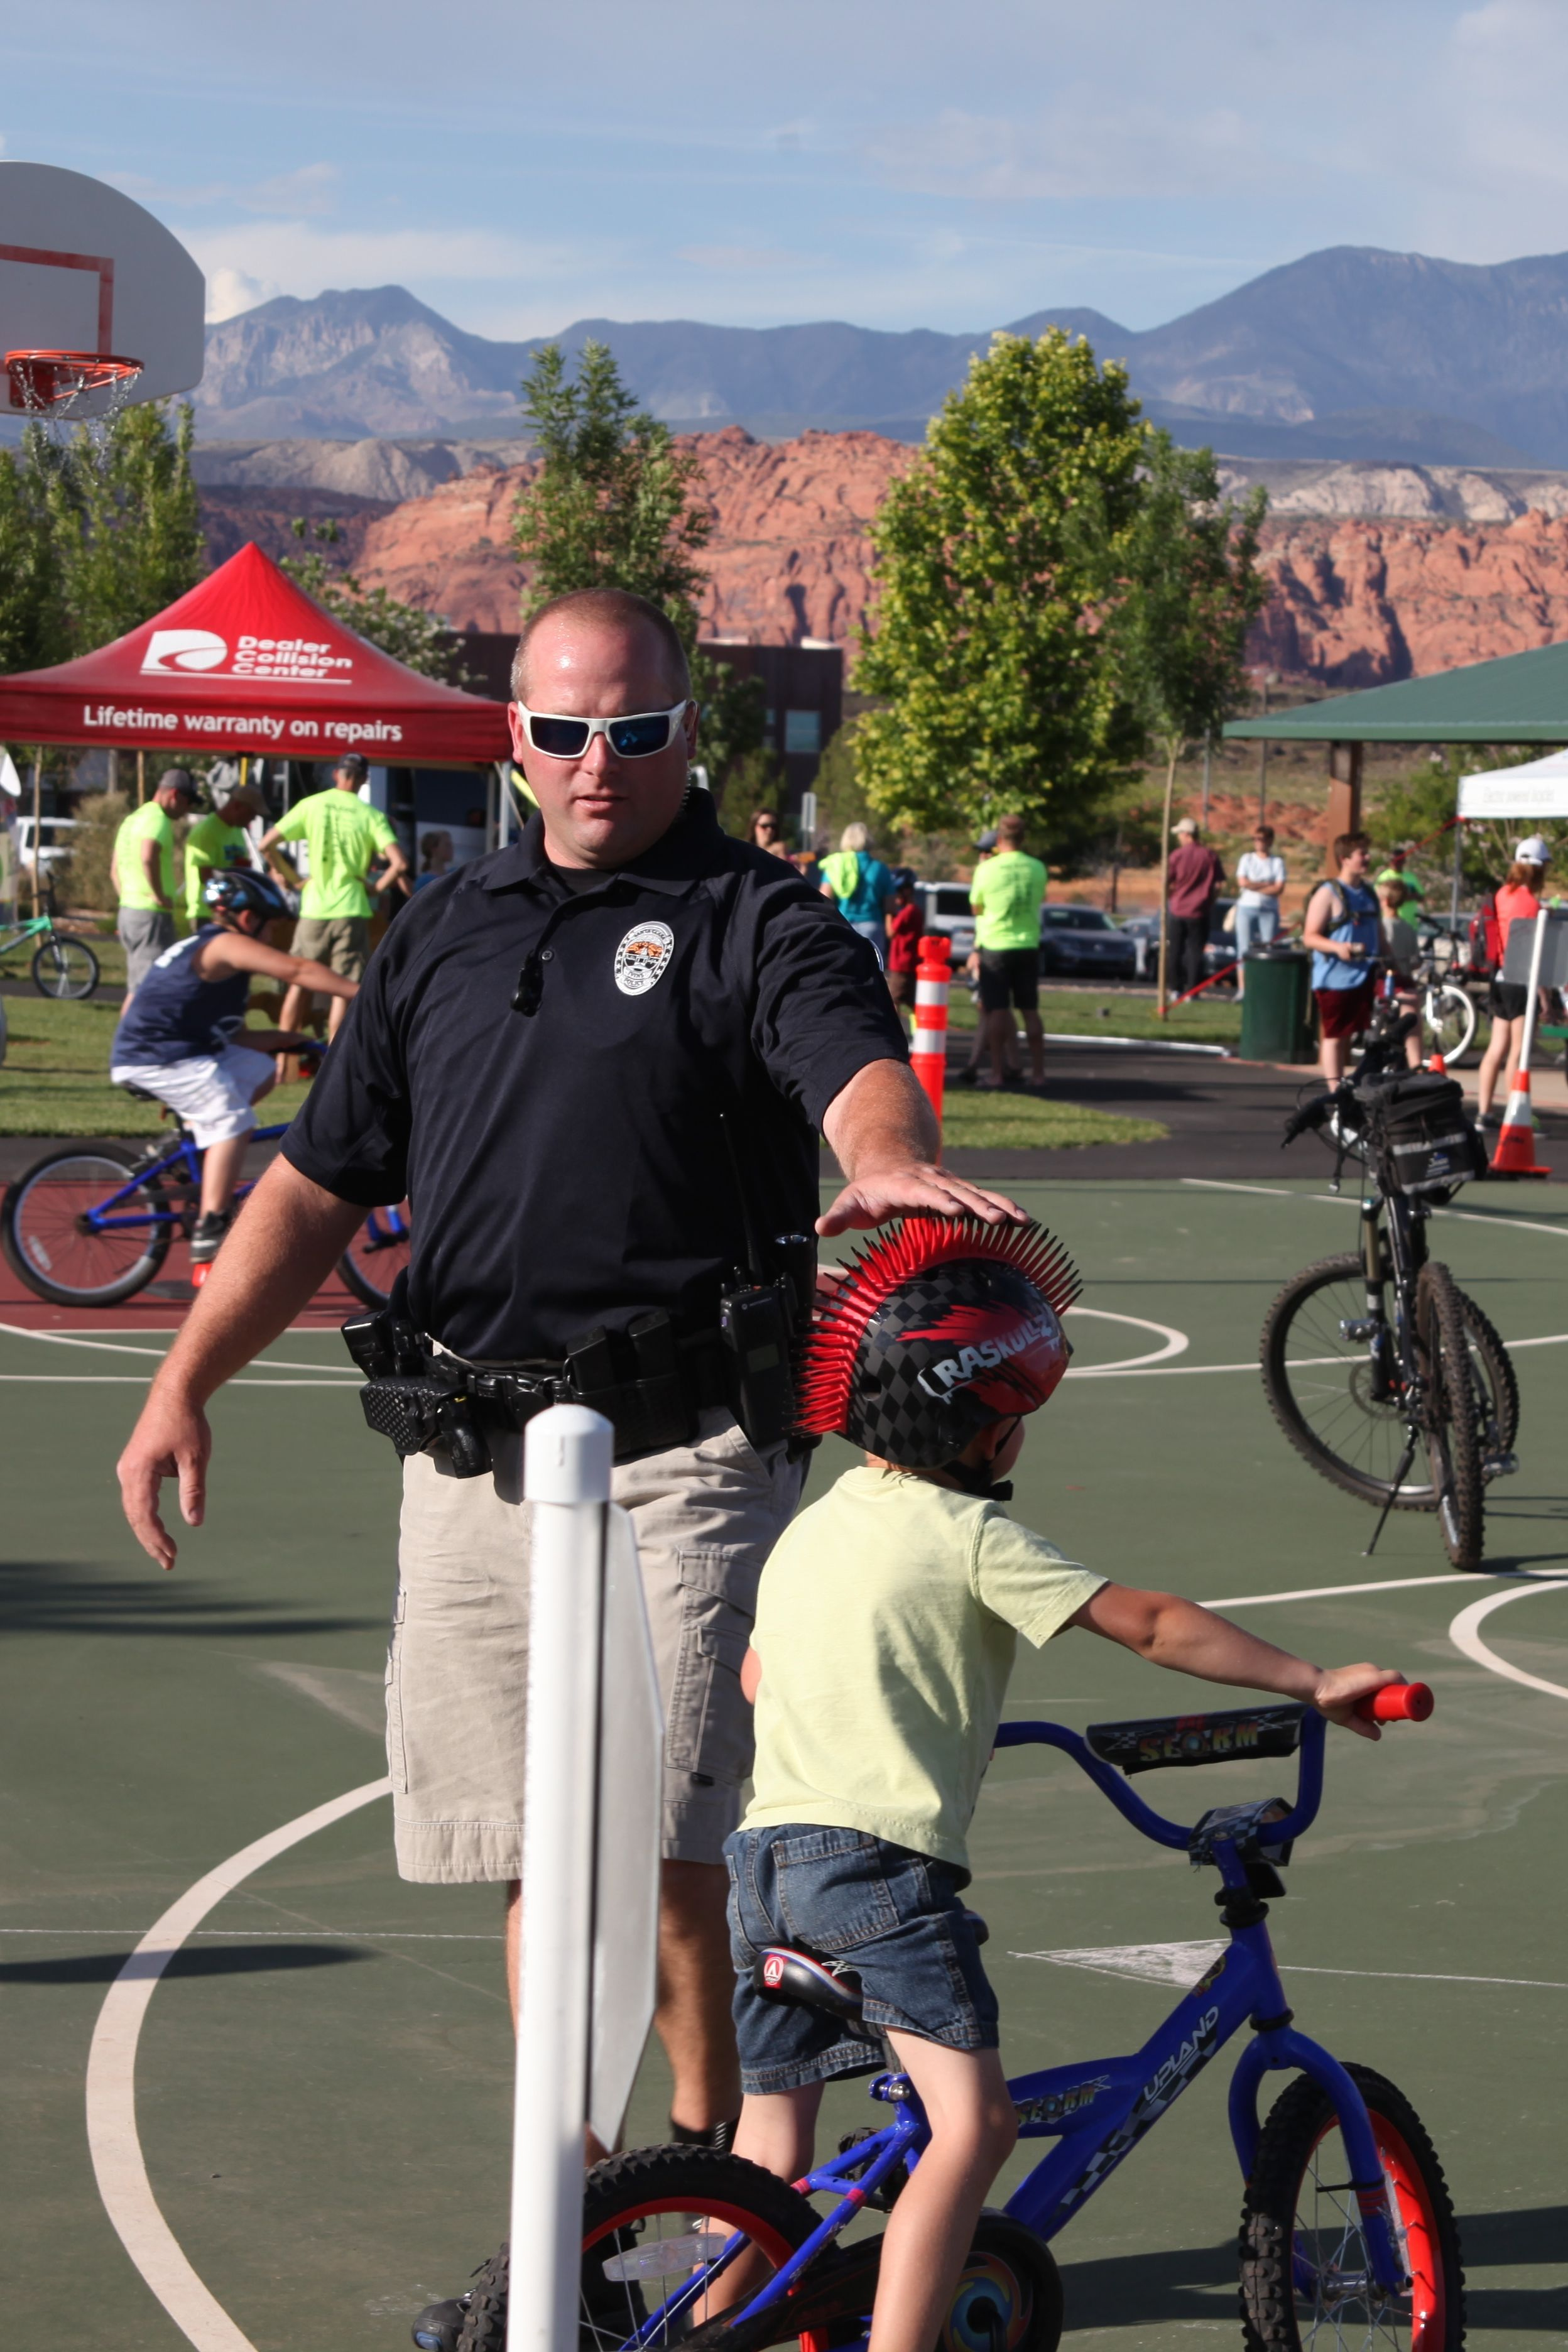 Road Respect bike rodeo event led by Santa Clara/Ivins Police, Santa Clara Utah, Date not given| Photo courtesy of Megan Rasmussen, St. George News